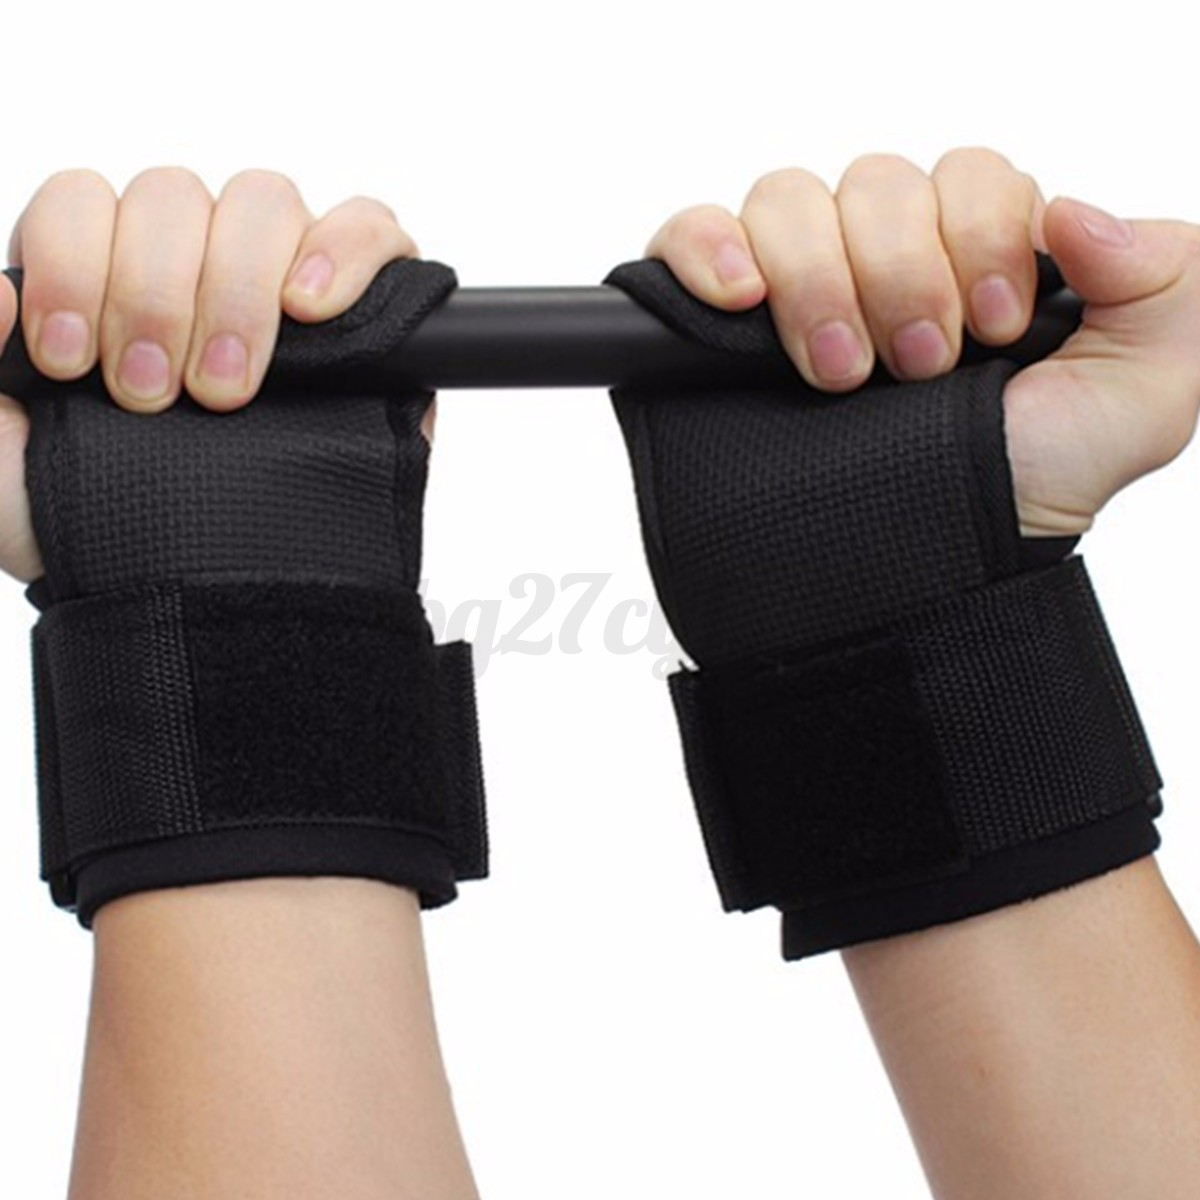 Weight Lifting Wrist Wraps Bandage Support Gloves Gym: Gym Weight Lifting Bar Hand Wrist Support Brace Strap Wrap